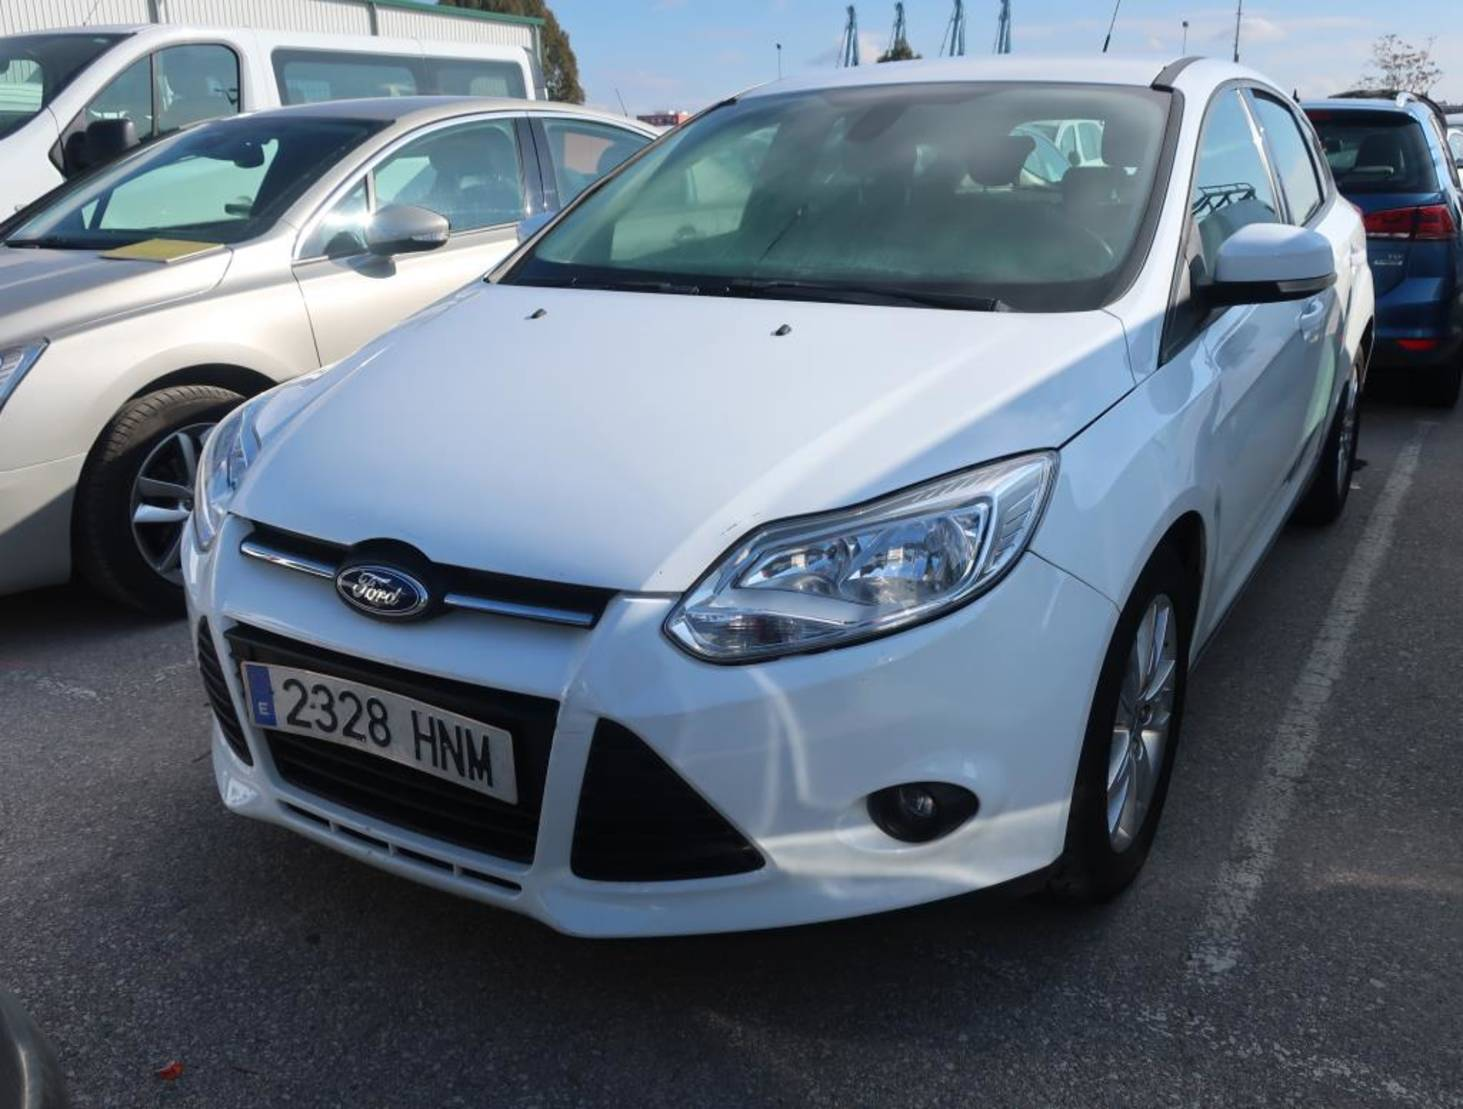 Ford Focus 1.6 Tdci Trend detail1